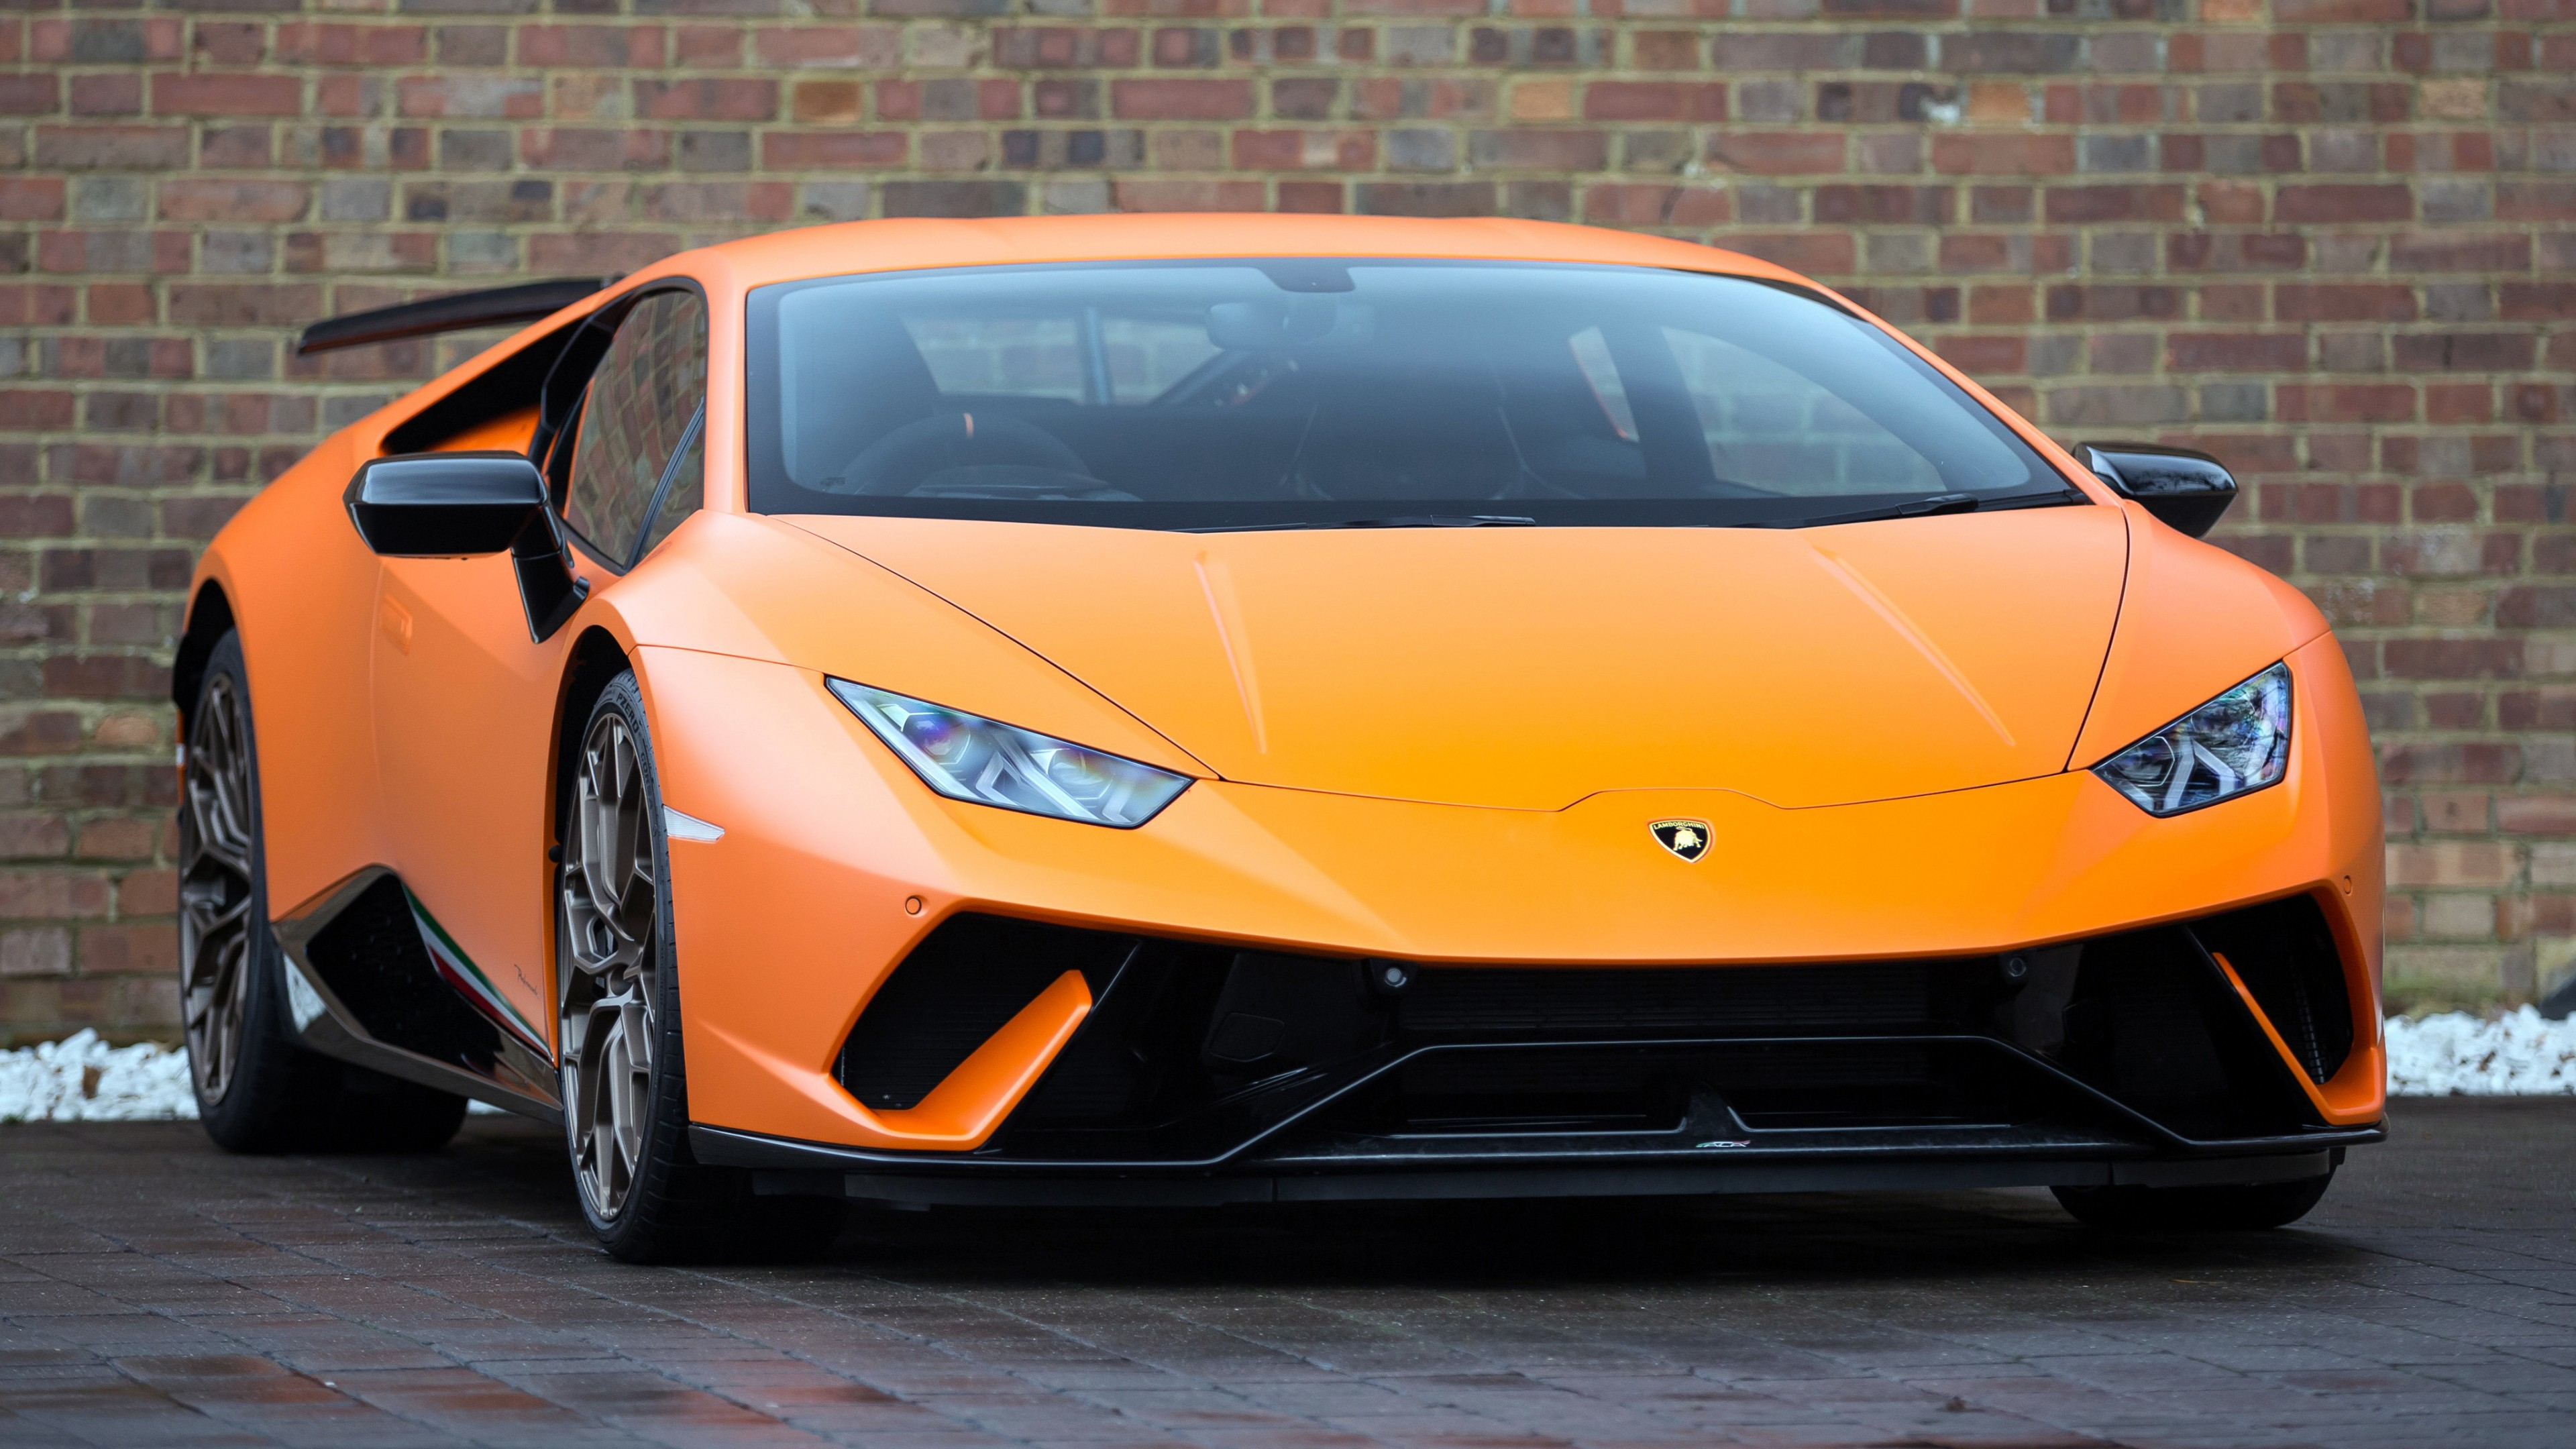 2017 Lamborghini Huracan Performante 4K 5 Wallpaper | HD ...